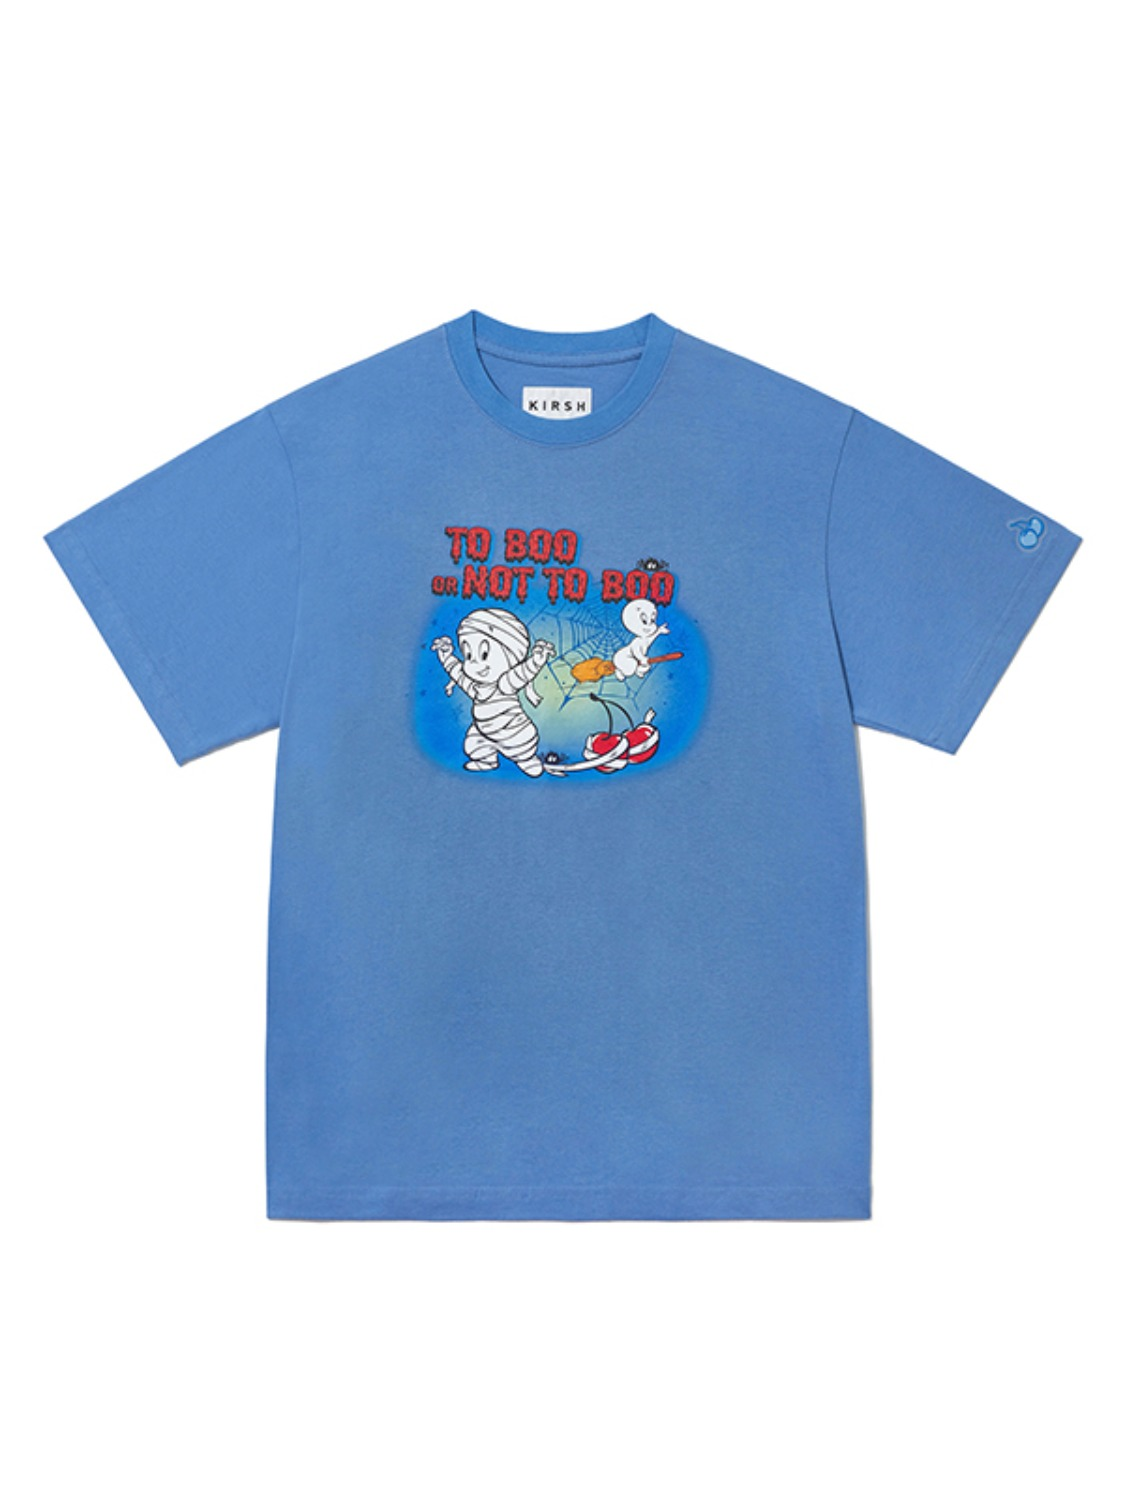 CASPER GRAPHIC T-SHIRT JA [LIGHT BLUE]